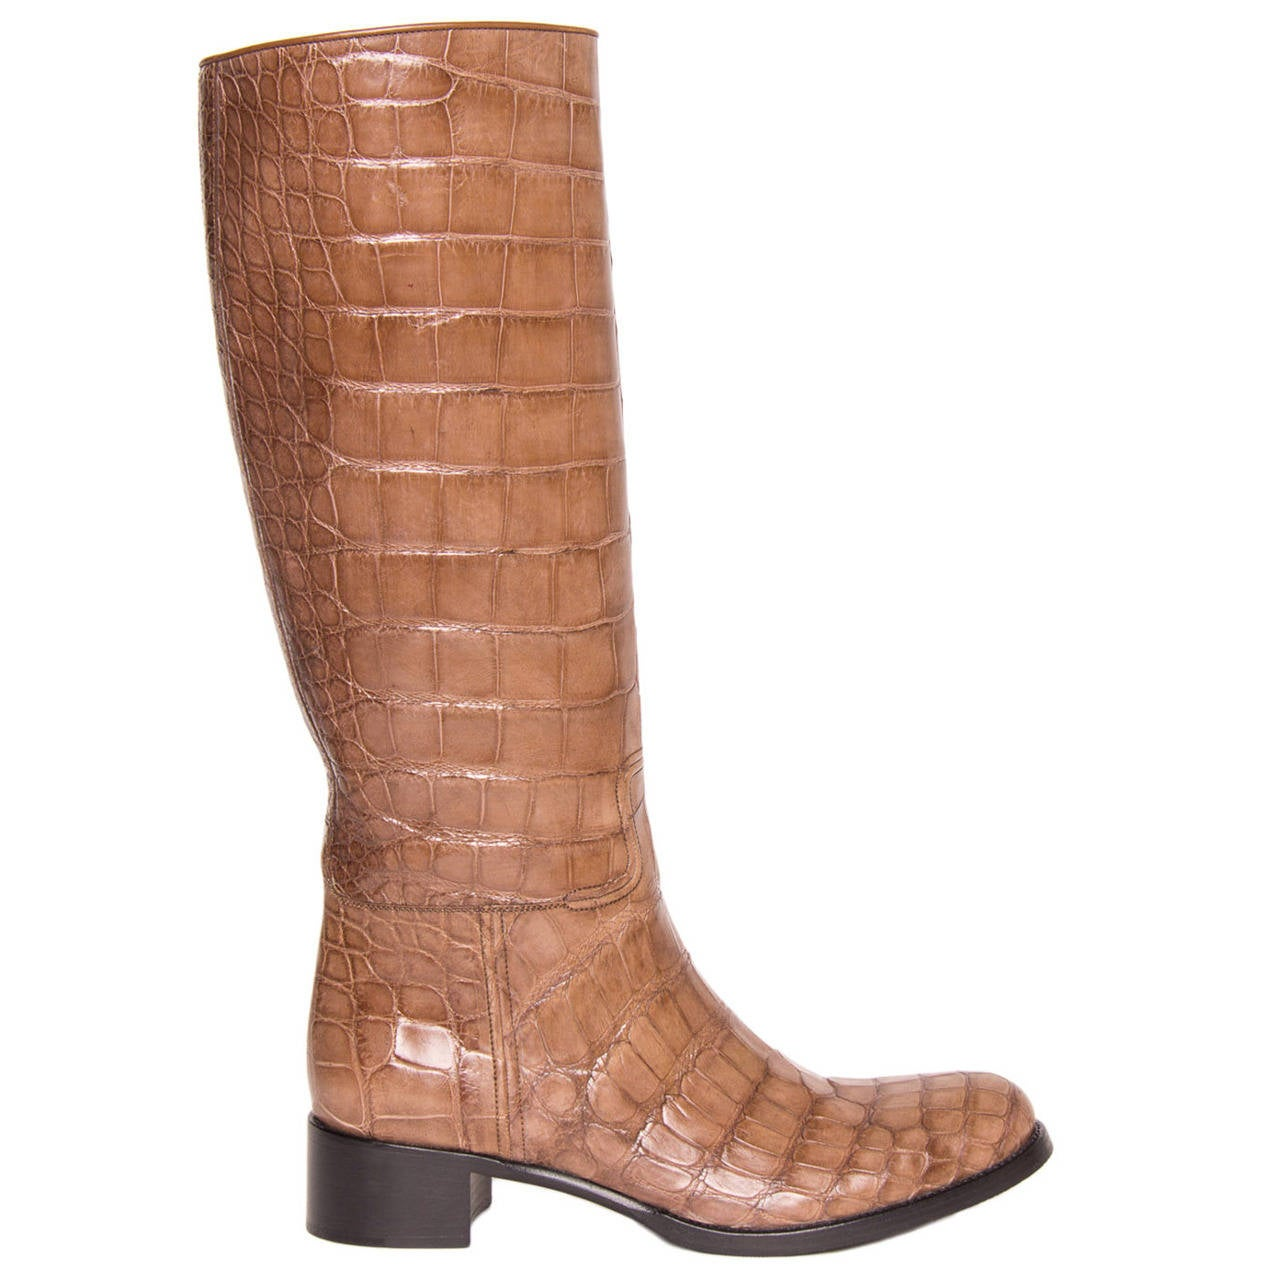 Prada Light Brown Crocodile Knee High Boots